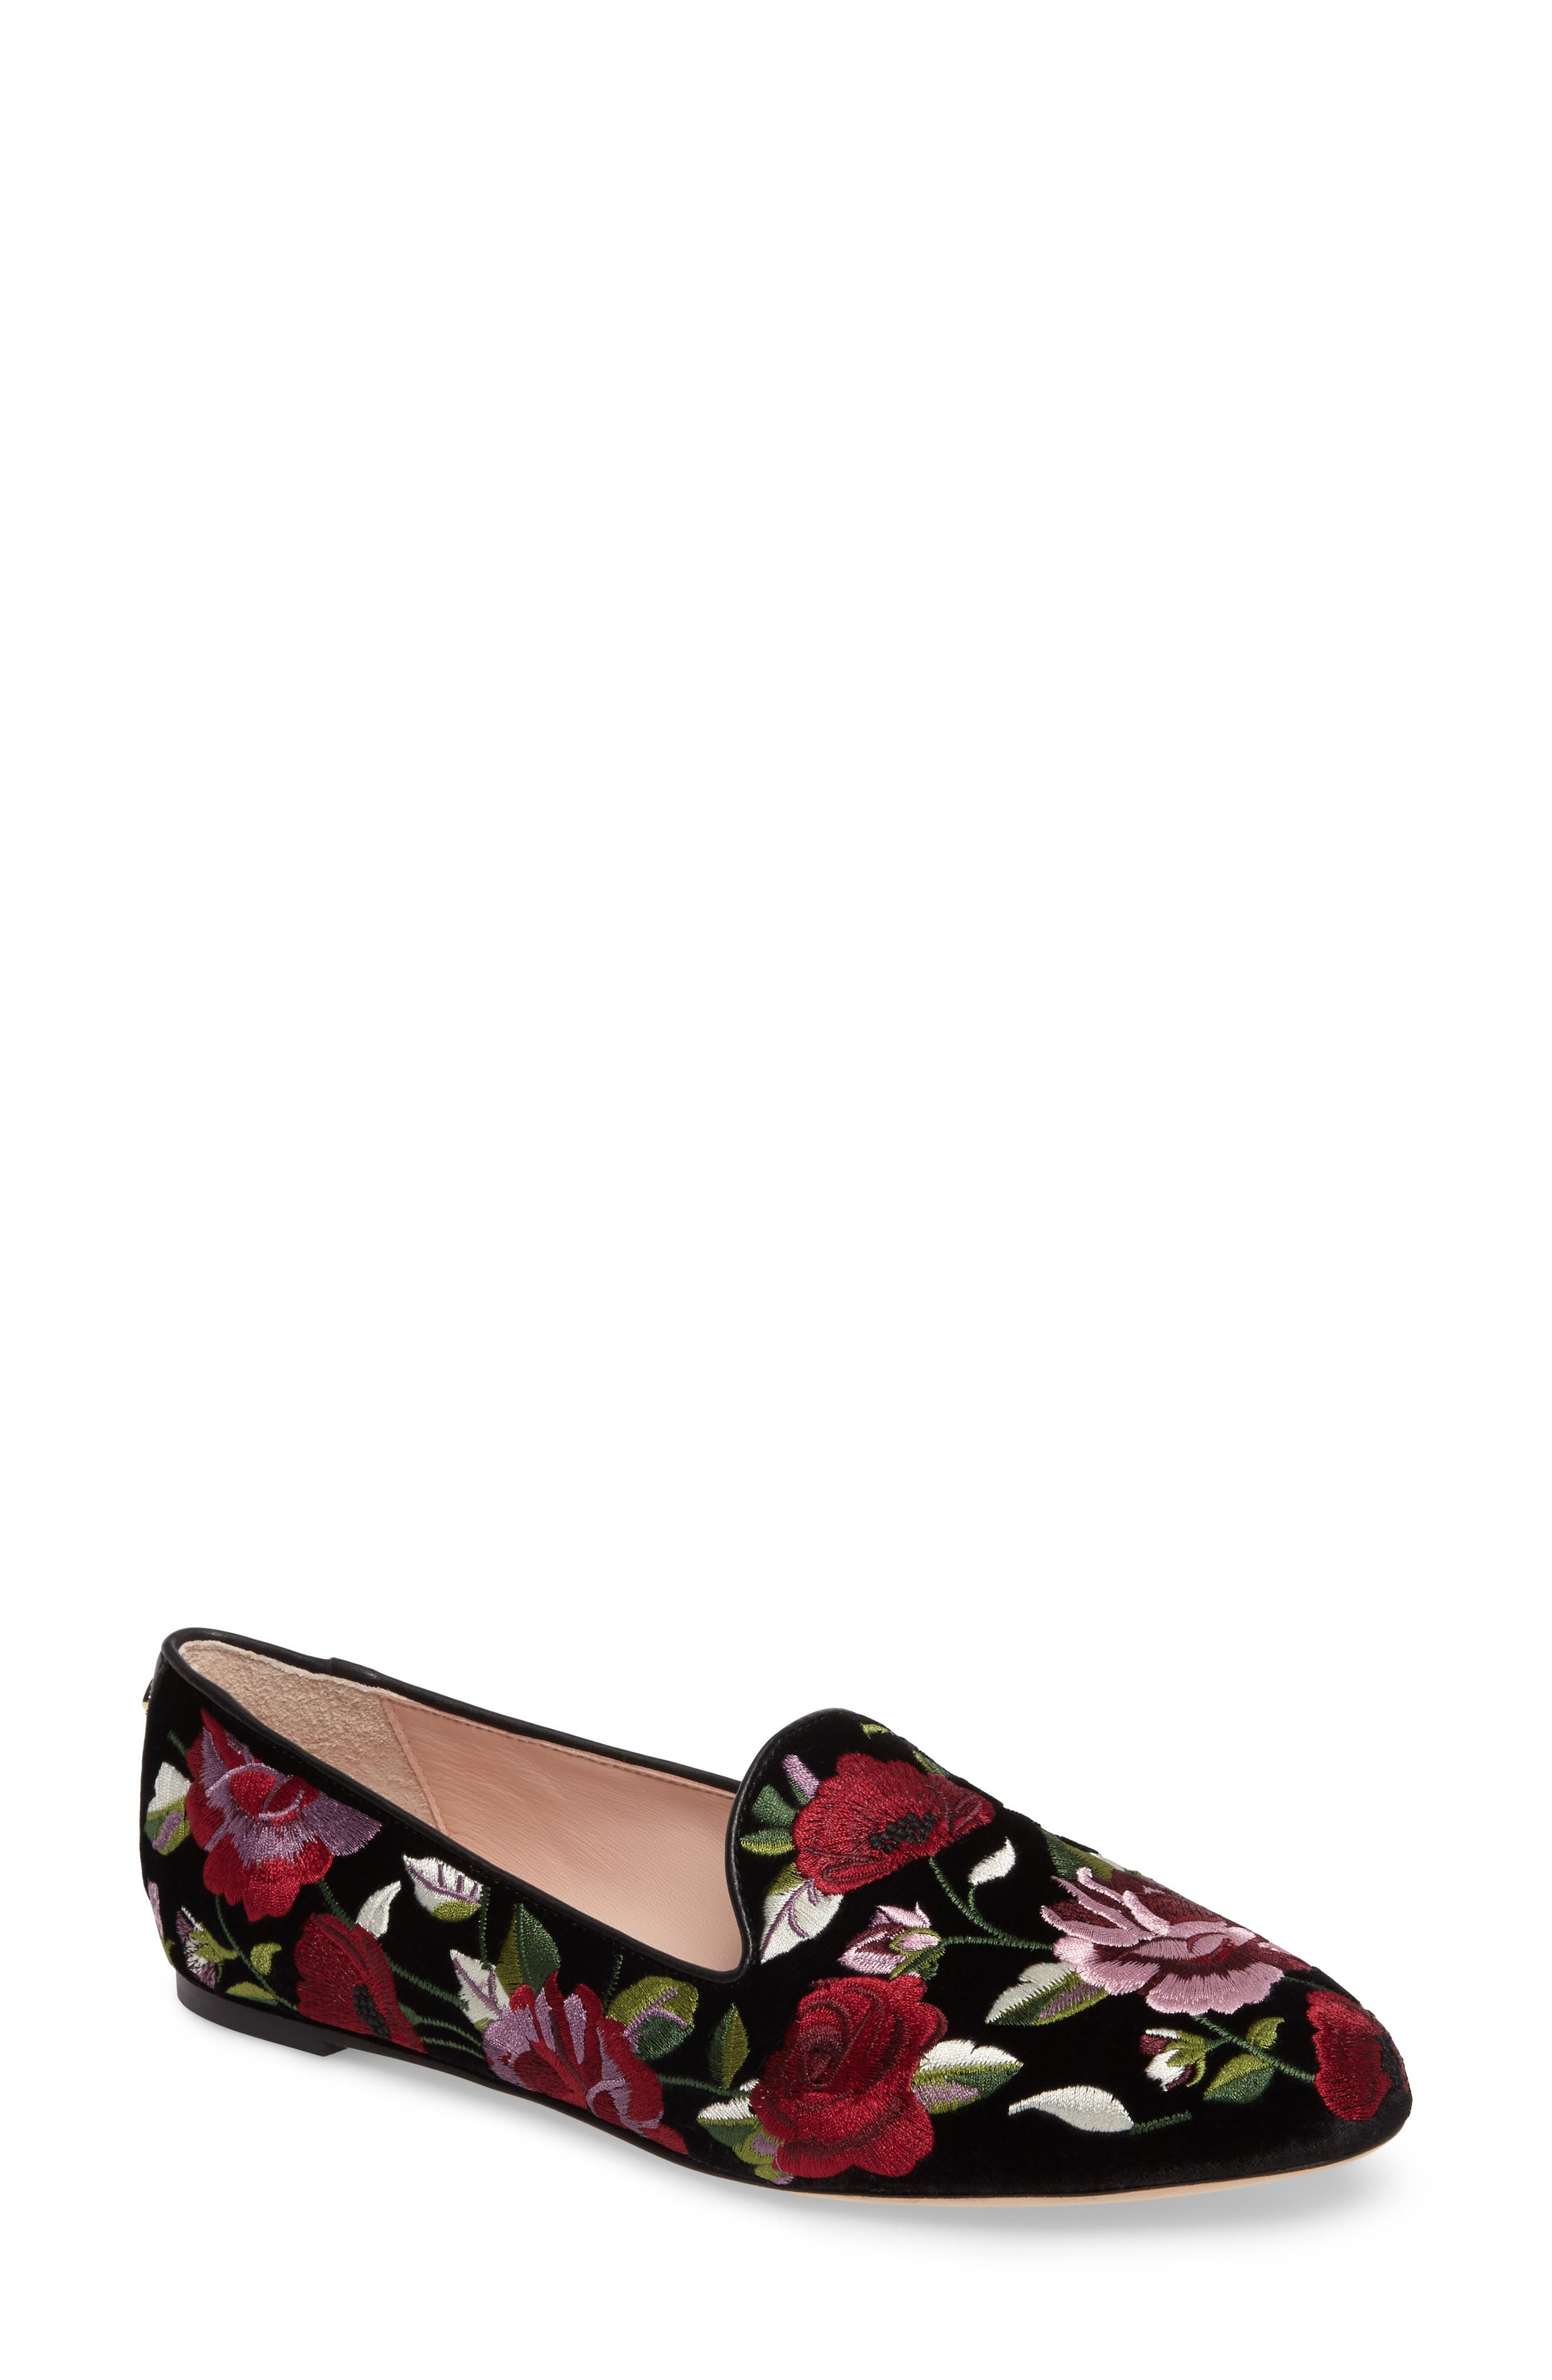 Alternate Image 1 Selected - kate spade new york swinton embroidered loafer (Women)